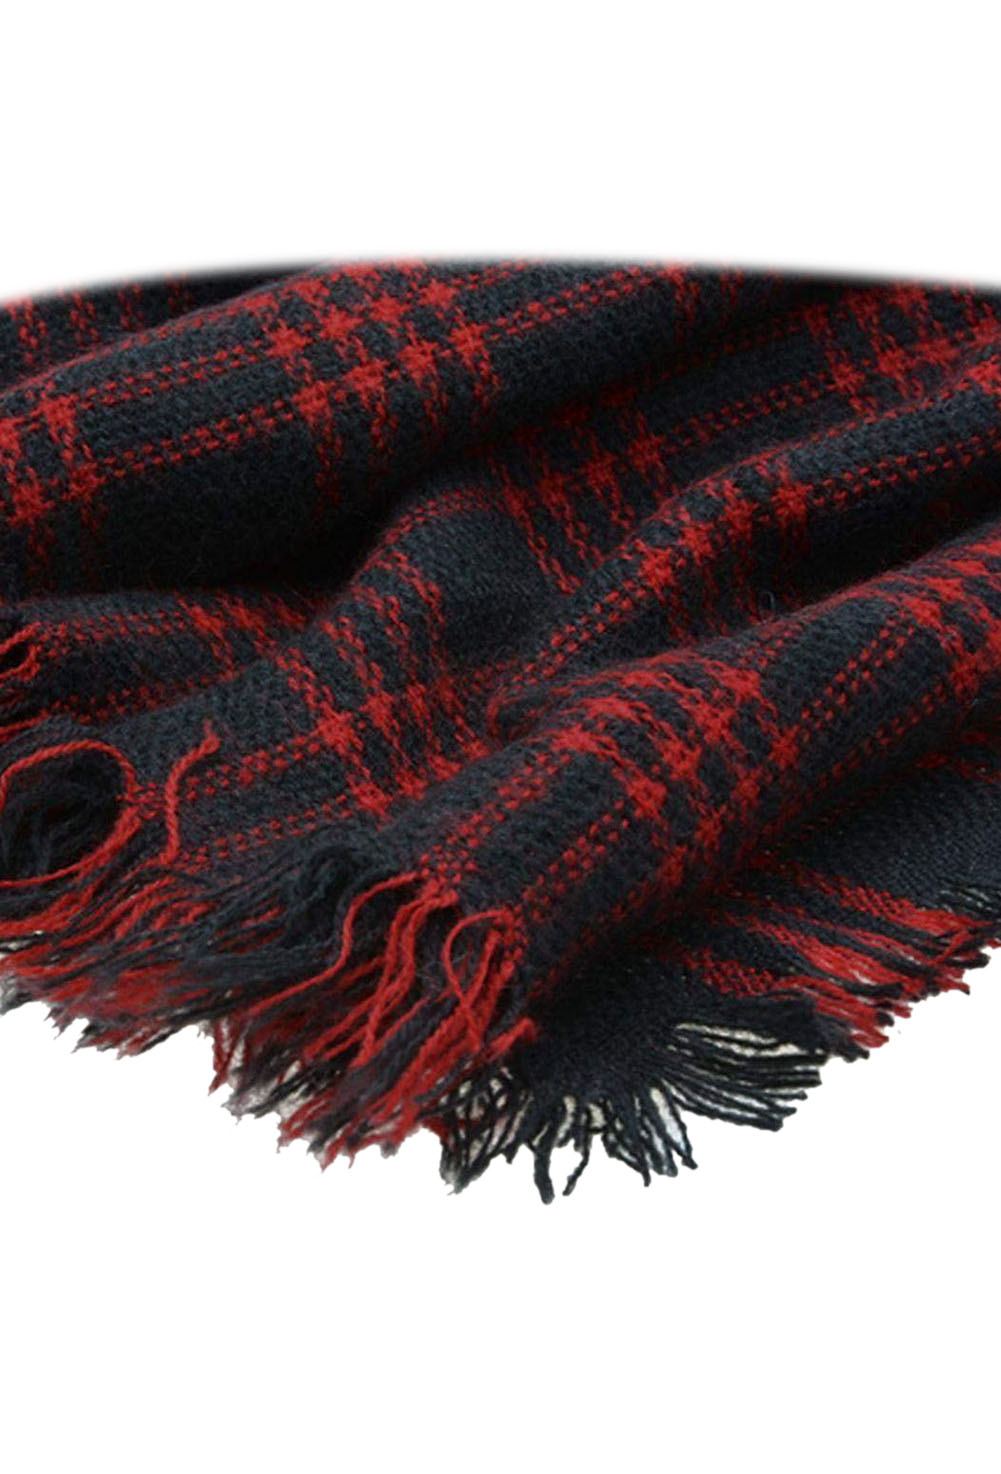 FS Hot Wool Blend font b Tartan b font Plaid Soft Scarf Wrap Shawl Blanket Stole